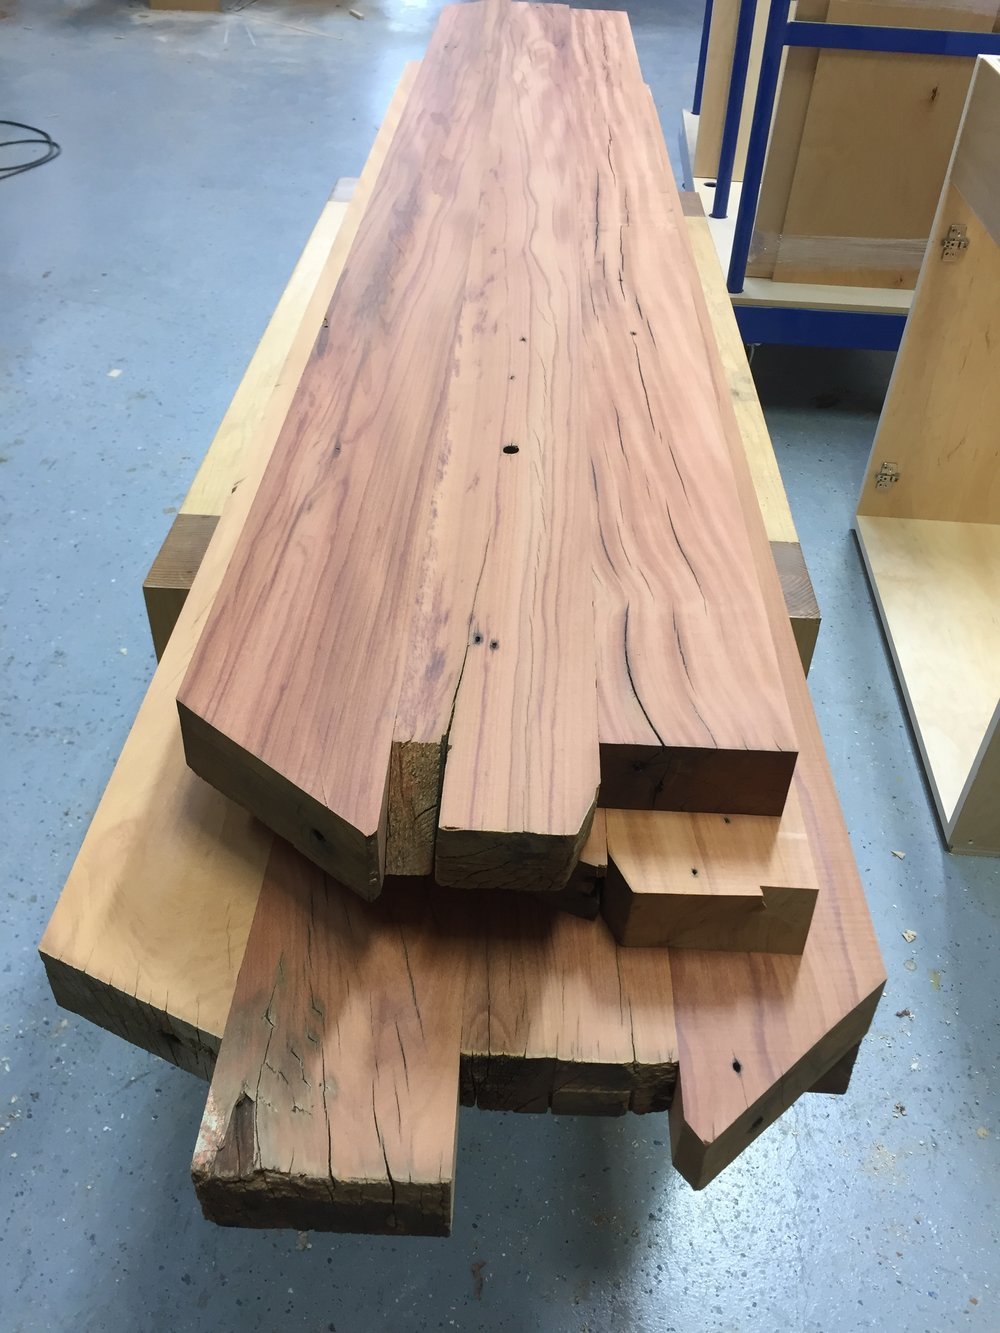 Milled peroba timbers